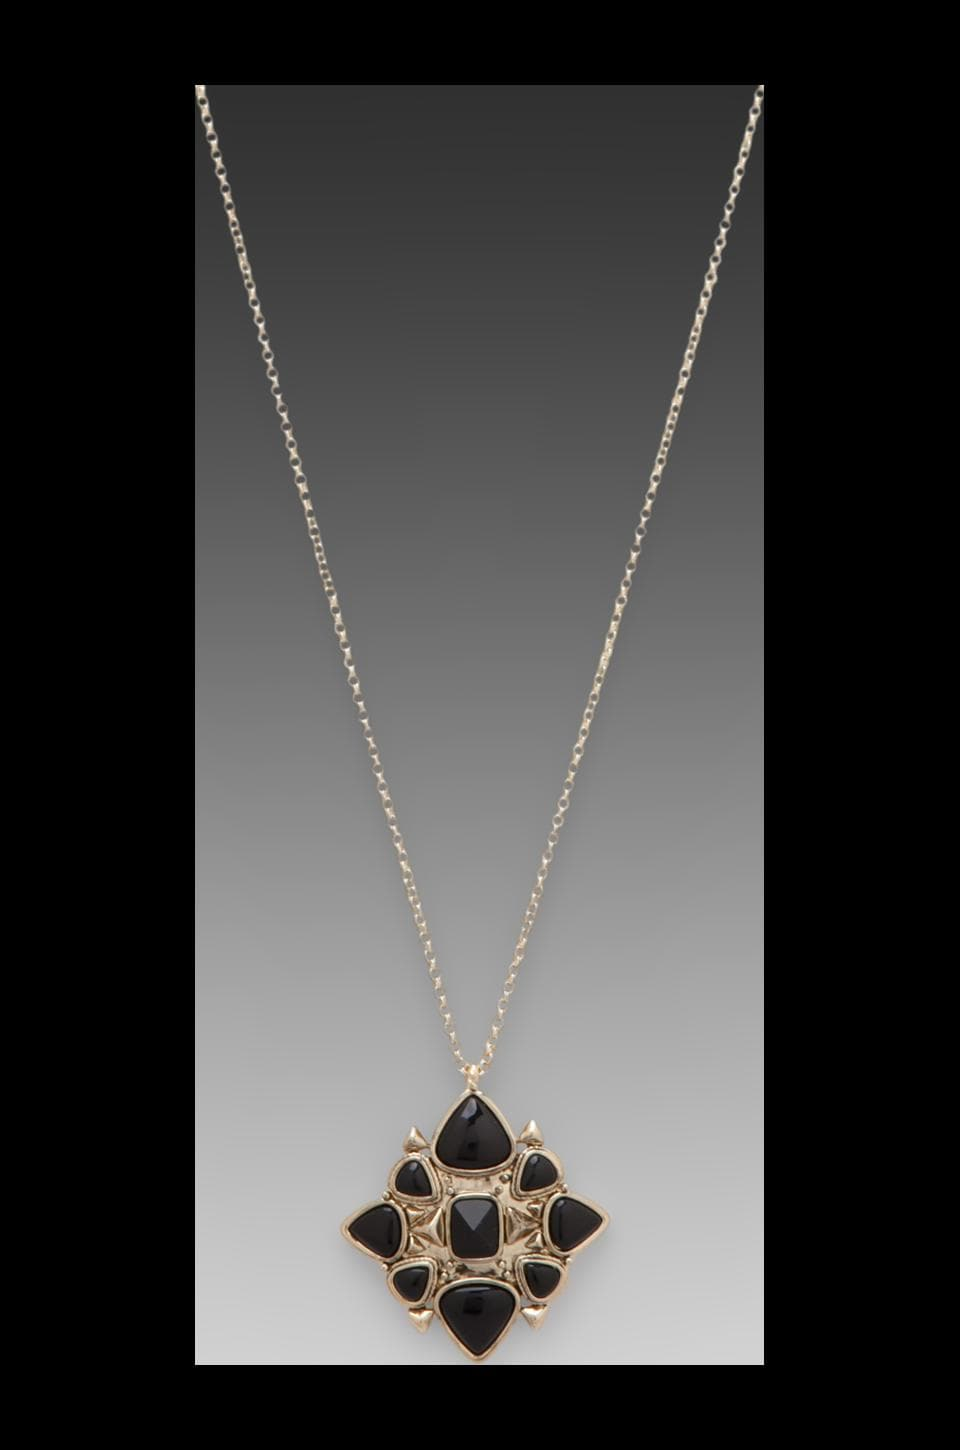 House of Harlow 1960 House of Harlow Kaleidoscope Pendant in Gold